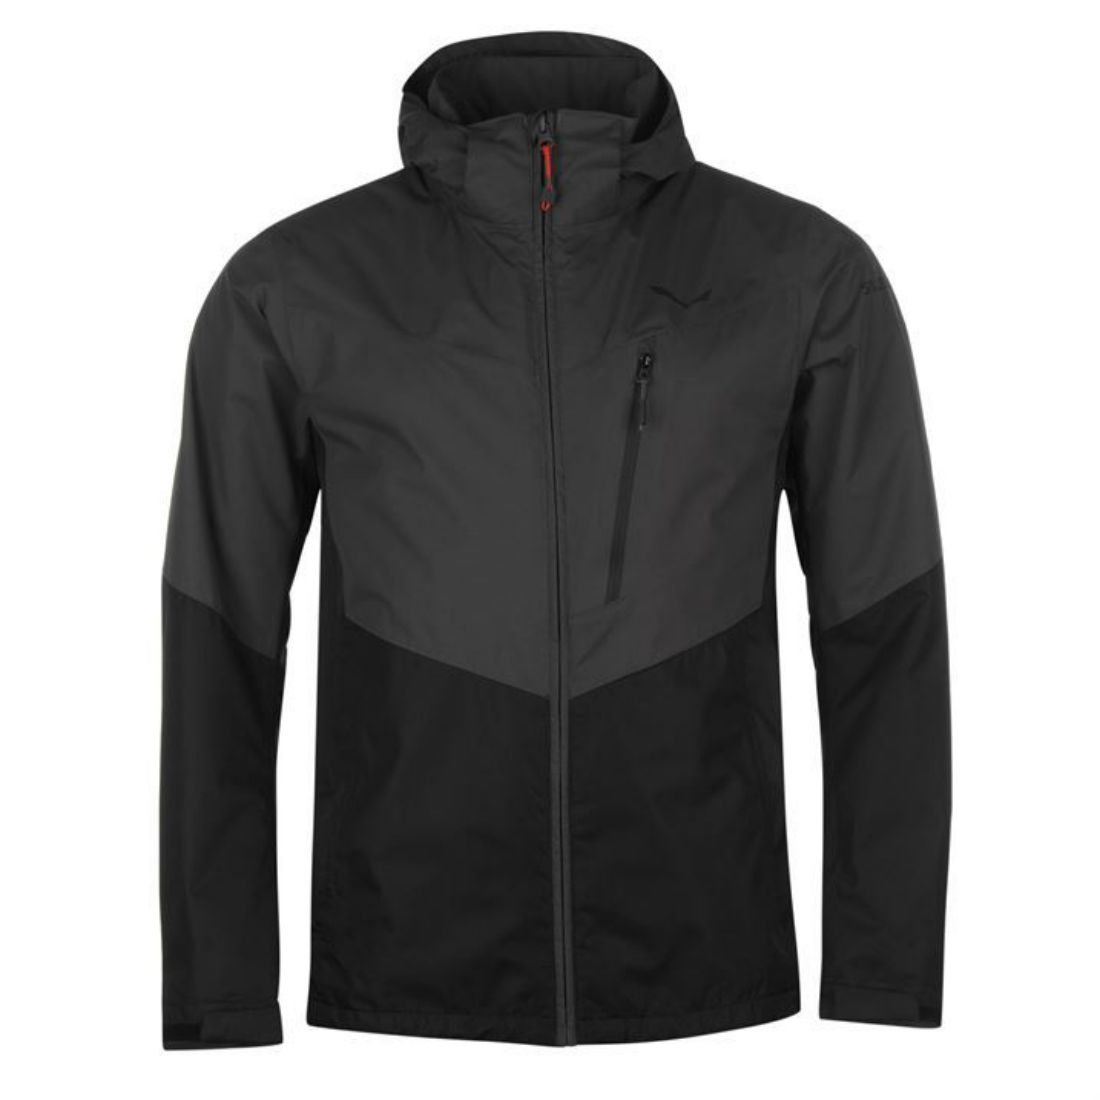 6d38263fe39f05 Salewa Mens Classic 2 Layer Jacket Waterproof Windproof ...